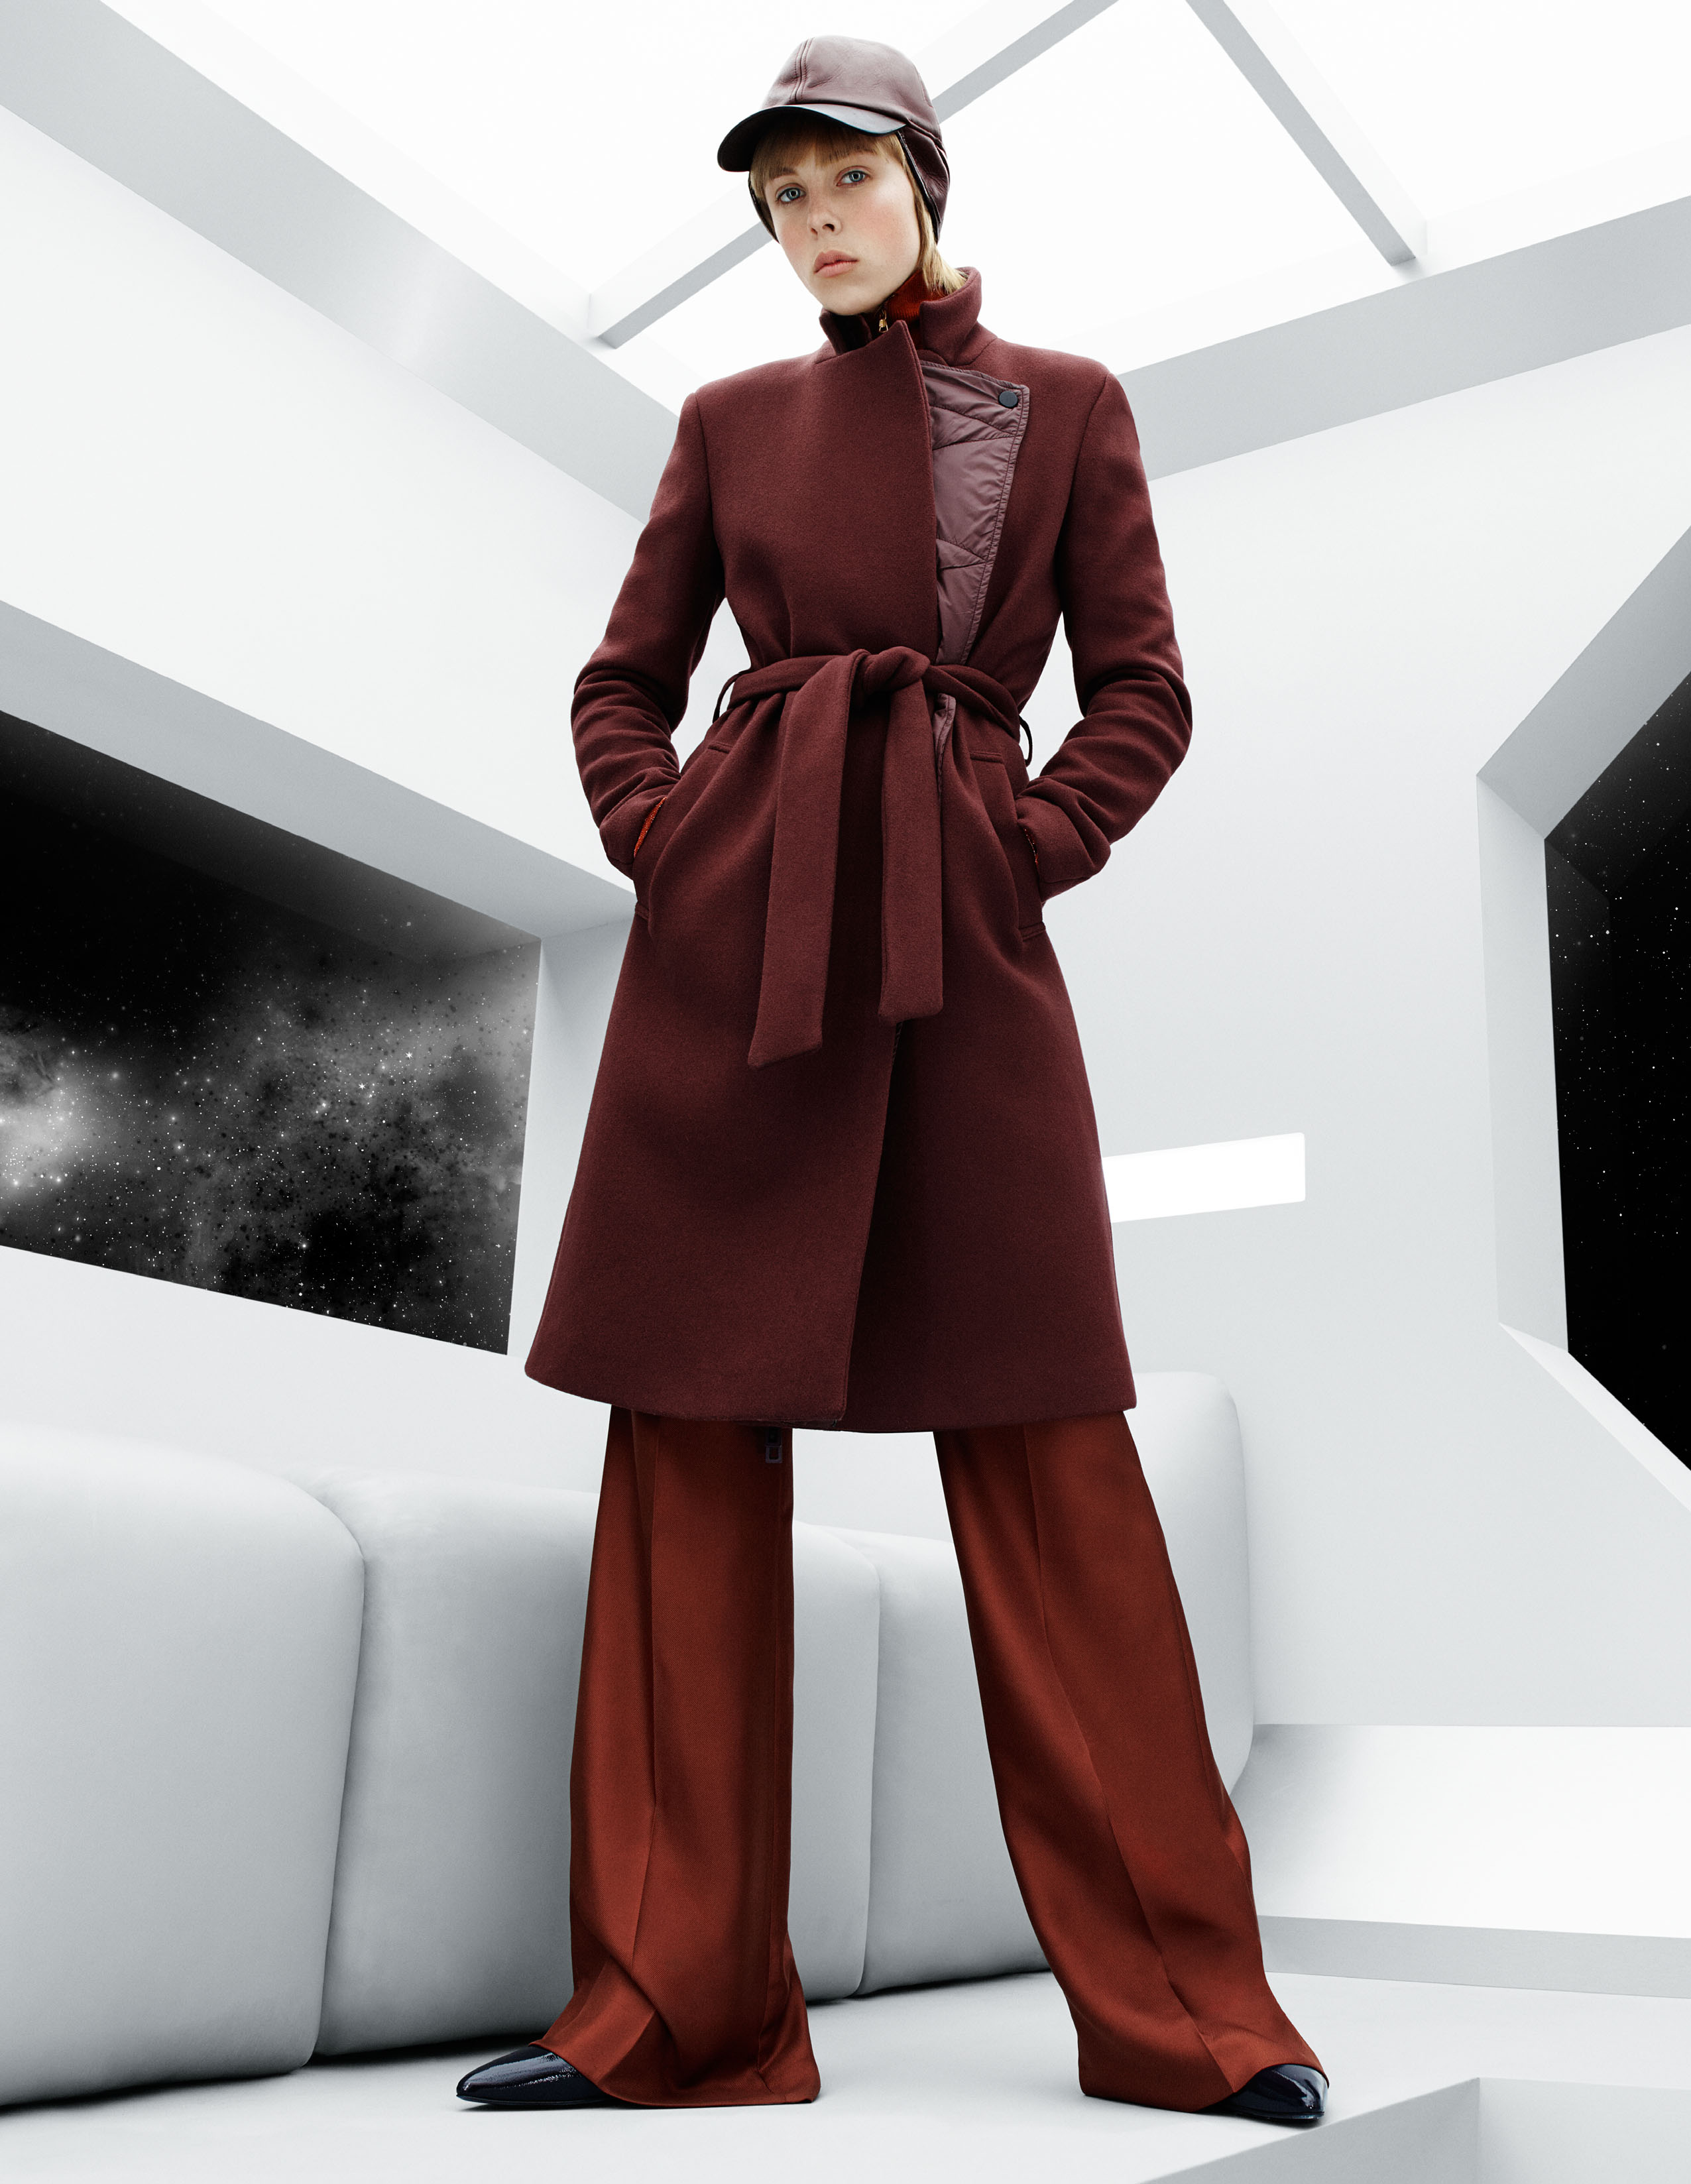 Campbell edie for h&m studio fall campaign advise to wear for autumn in 2019